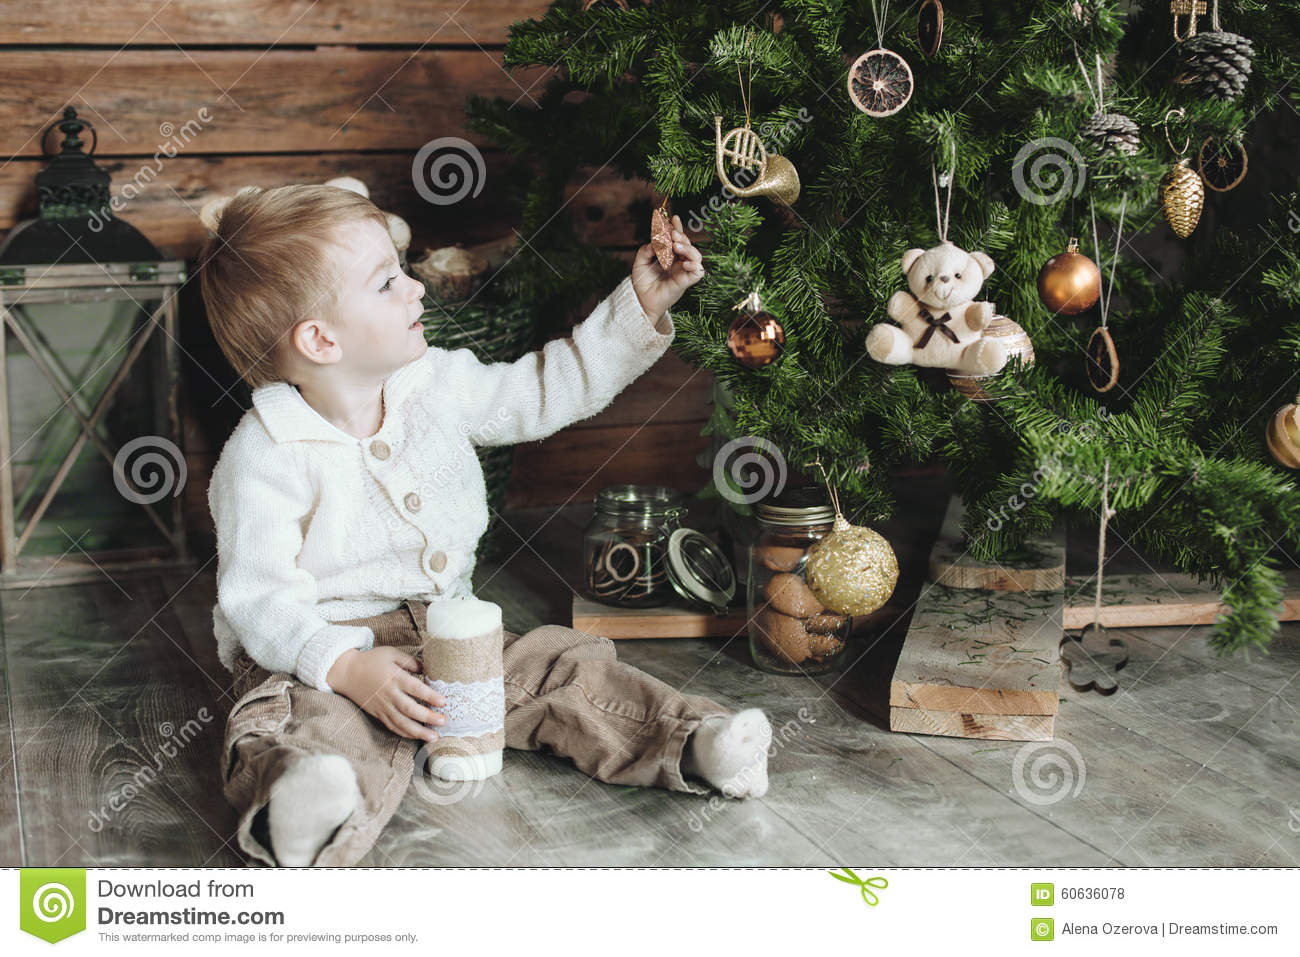 Christmas stock photo. Image of cheerful, christmas, cold - 60636078